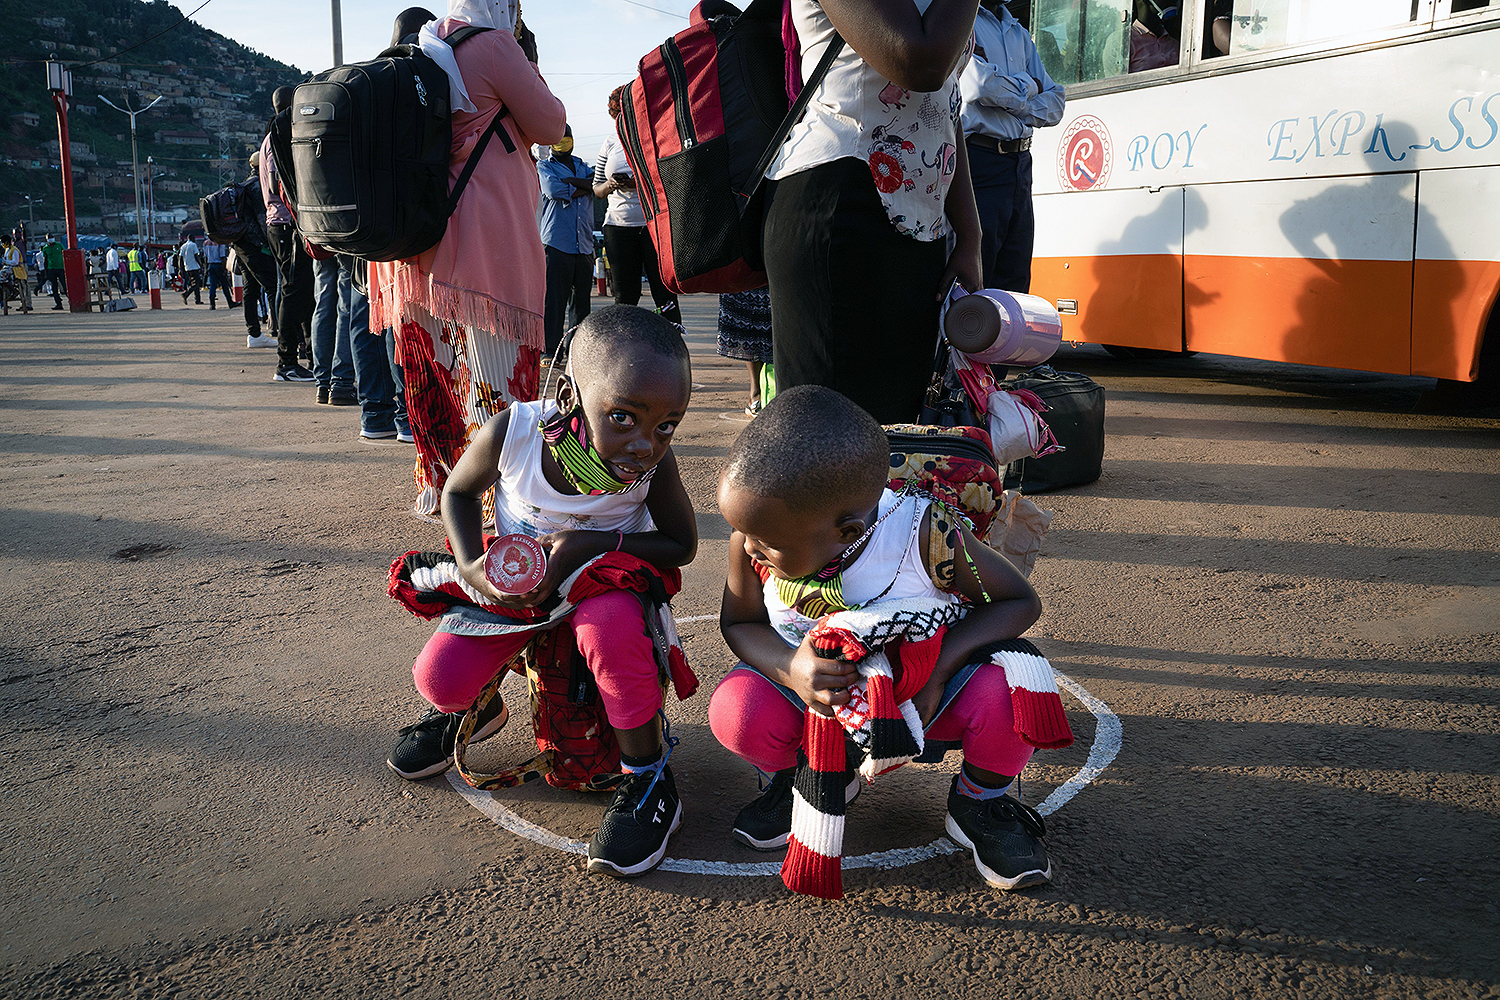 People stand in circles to adhere to social distancing measures as they wait for a bus at Nyabugogo bus station in Kigali, Rwanda, on May 4, the first day that the nationwide coronavirus lockdown was partially lifted. SIMON WOHLFAHRT/AFP via Getty Images